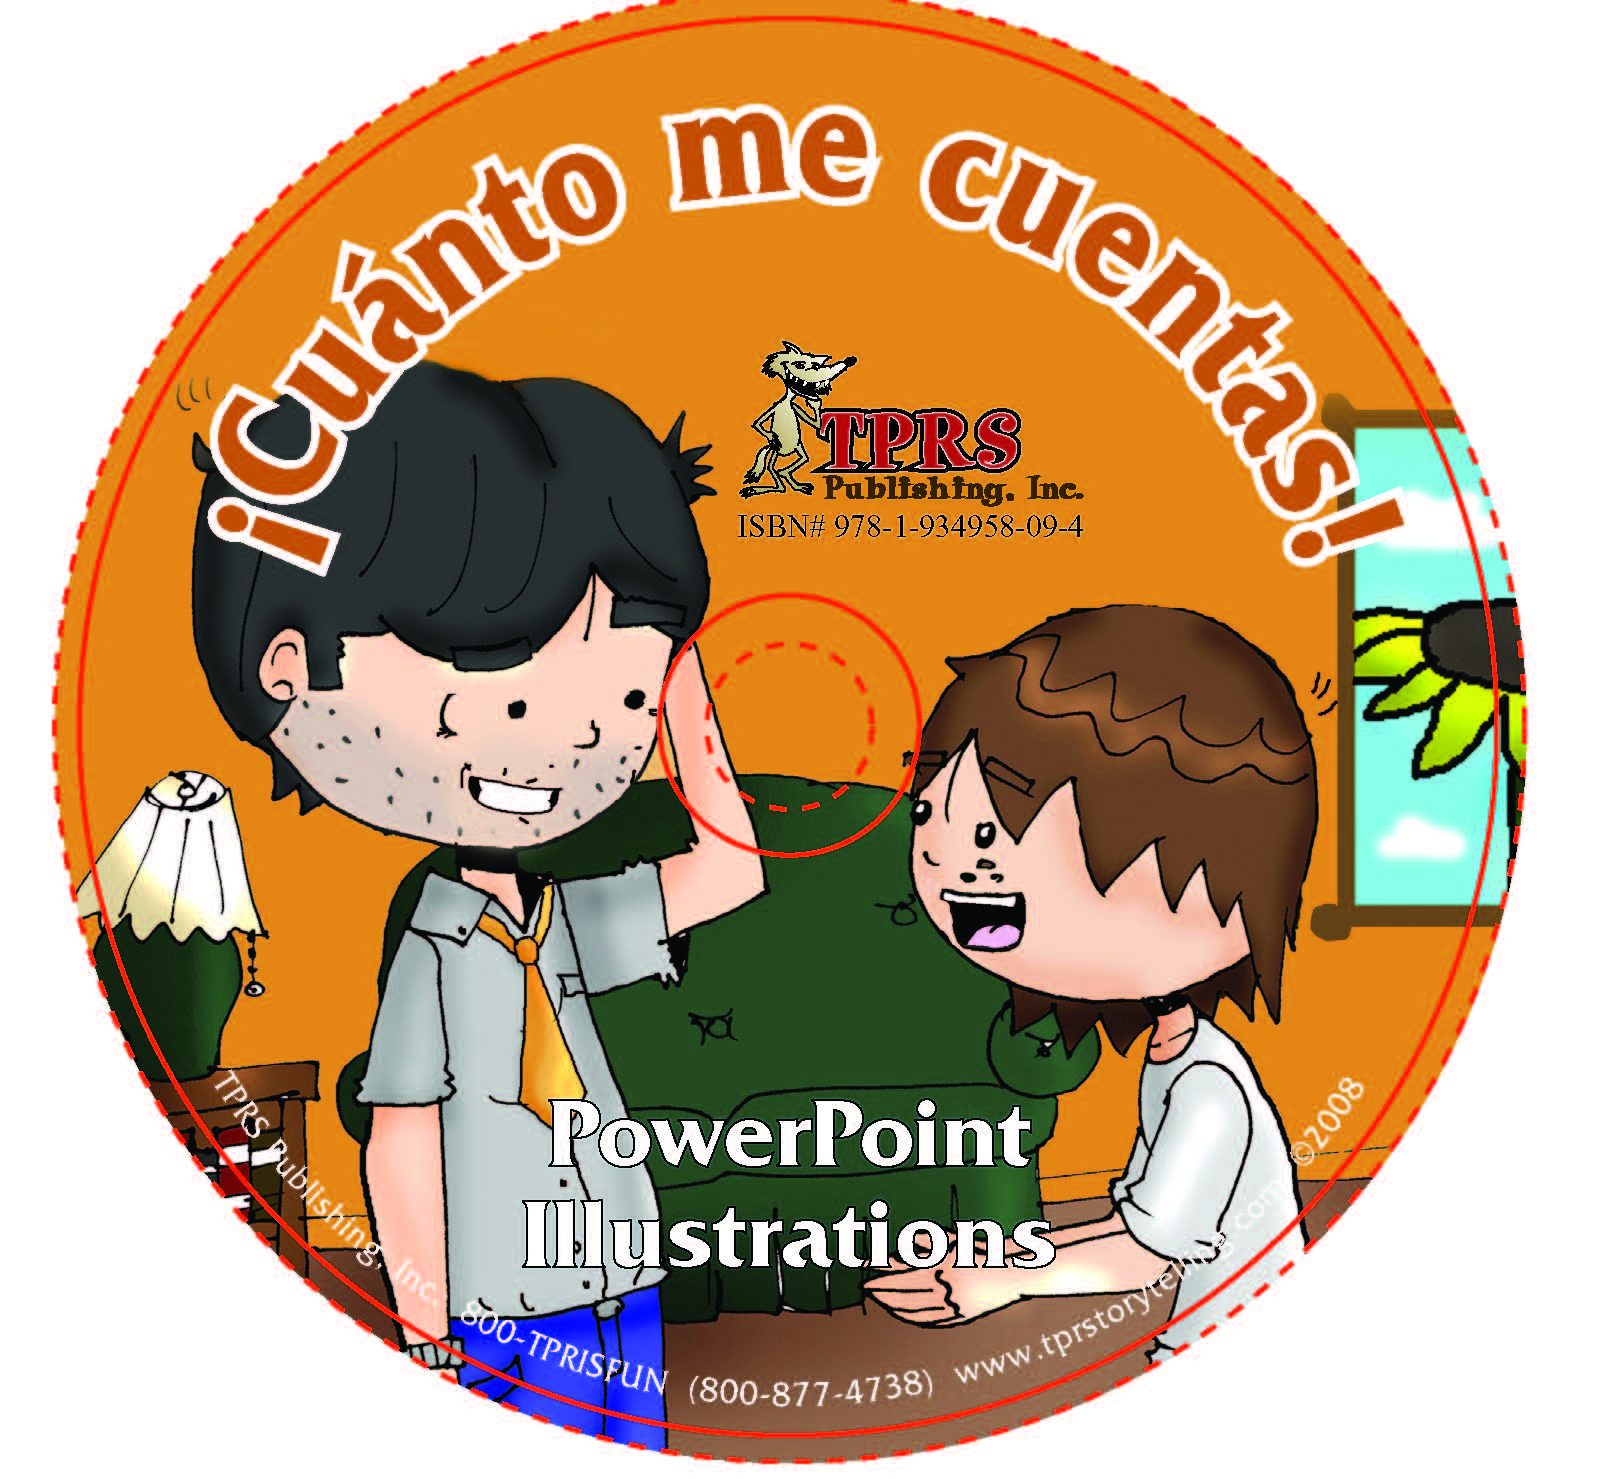 ¡Cuánto me cuentas! Illustrations on CD